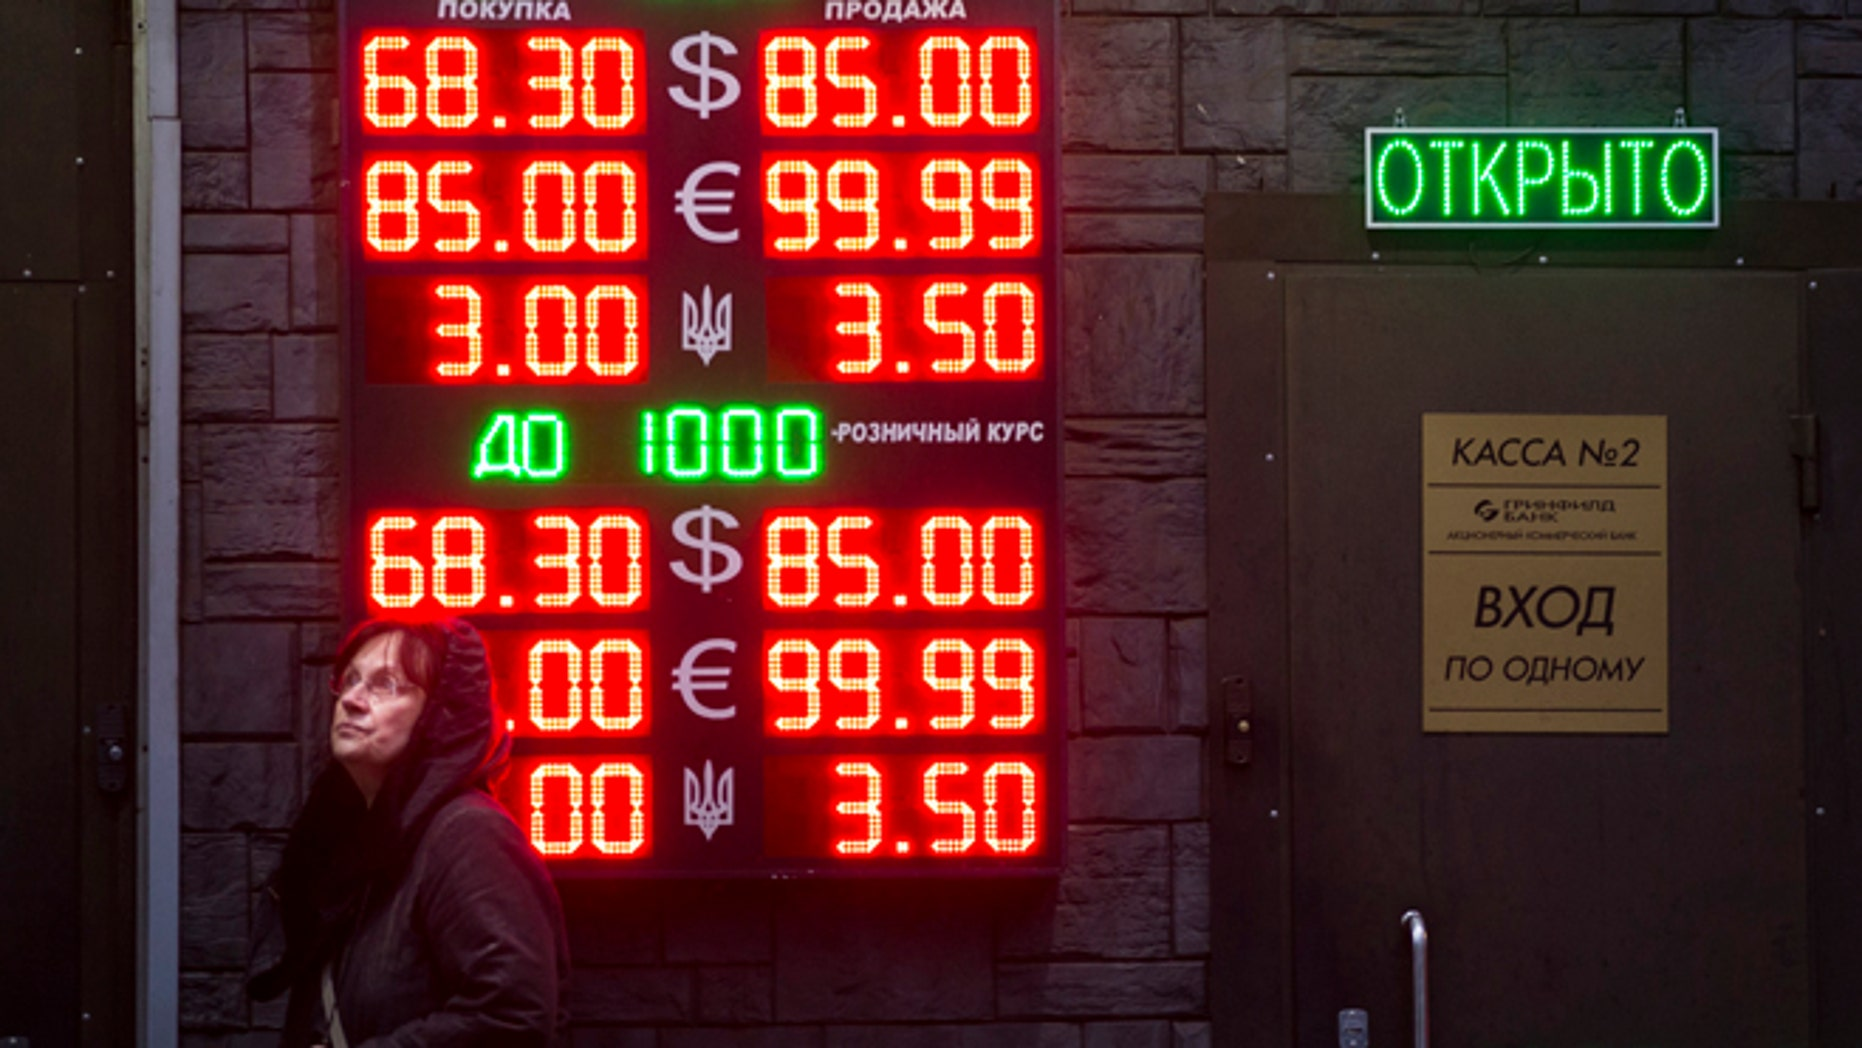 Dec. 16, 2014: People wait to exchange currency near a sign advertising currency exchange rates at an exchange office in Moscow, Russia.